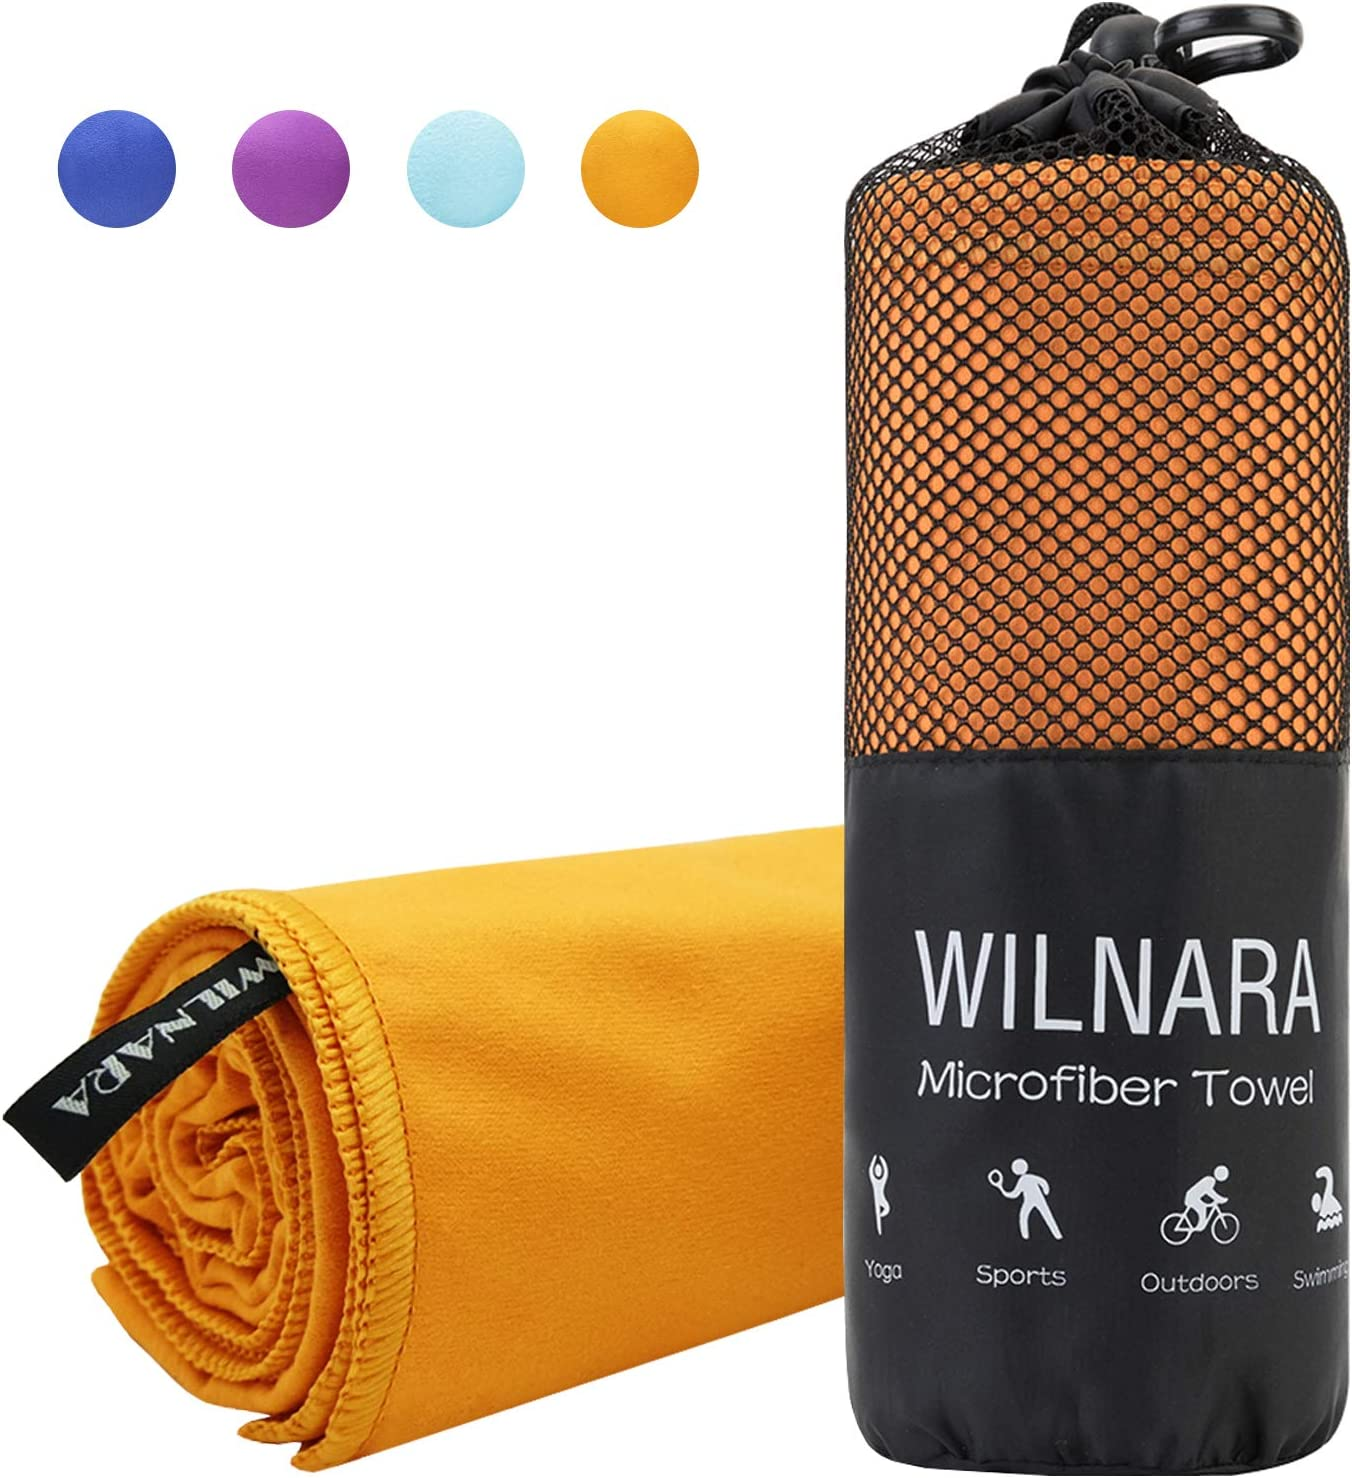 Atalanta Andrewly Cooling Towel Workout Towels Camp Multi-Purpose Travel Fast Drying Super Soft Beach Pool Compact Towel Printing Towel for Women Men Shower Blanket Yoga Gym 12/'/'x44/'/'